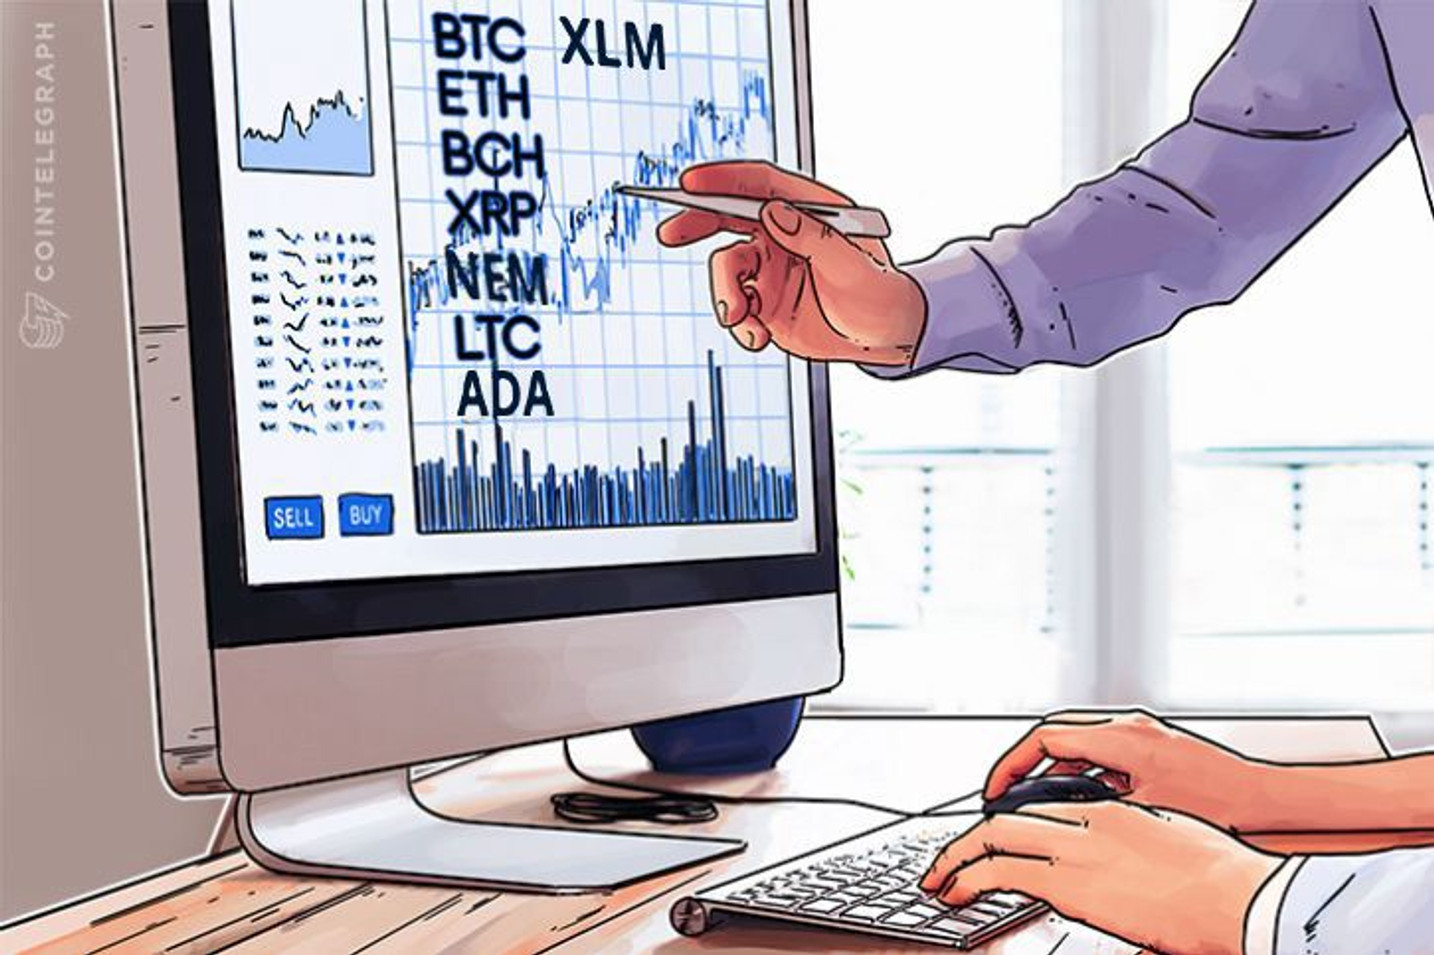 Bitcoin, Ethereum, Bitcoin Cash, Ripple, Stellar, Litecoin, Cardano, NEO, EOS: Price Analysis, Feb. 23